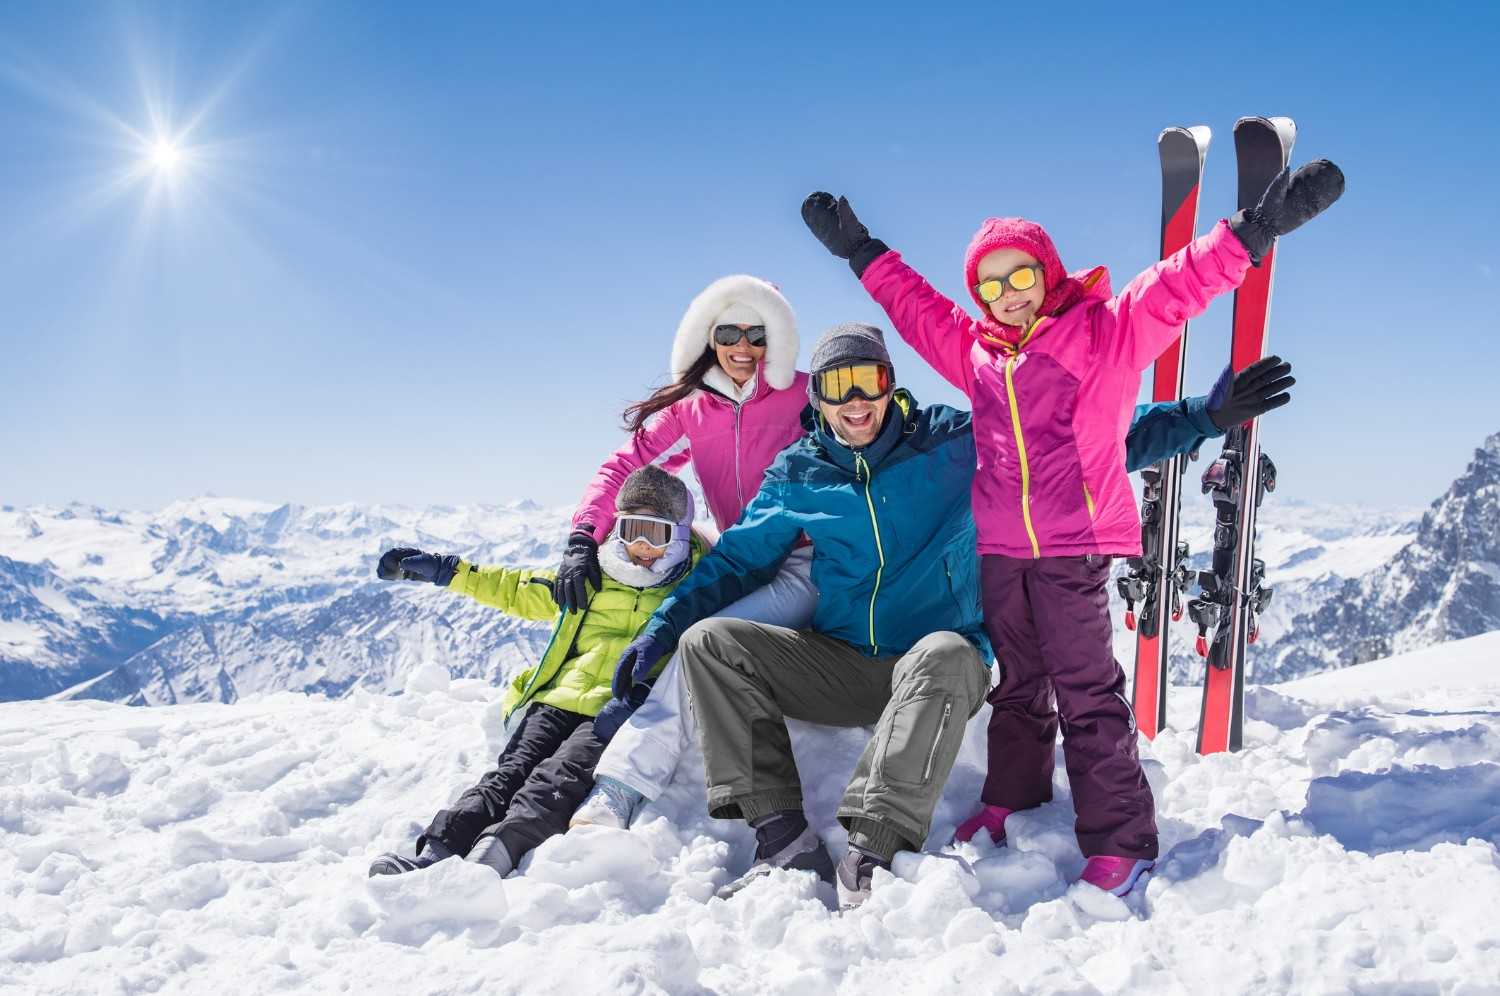 Family skiing in the snow